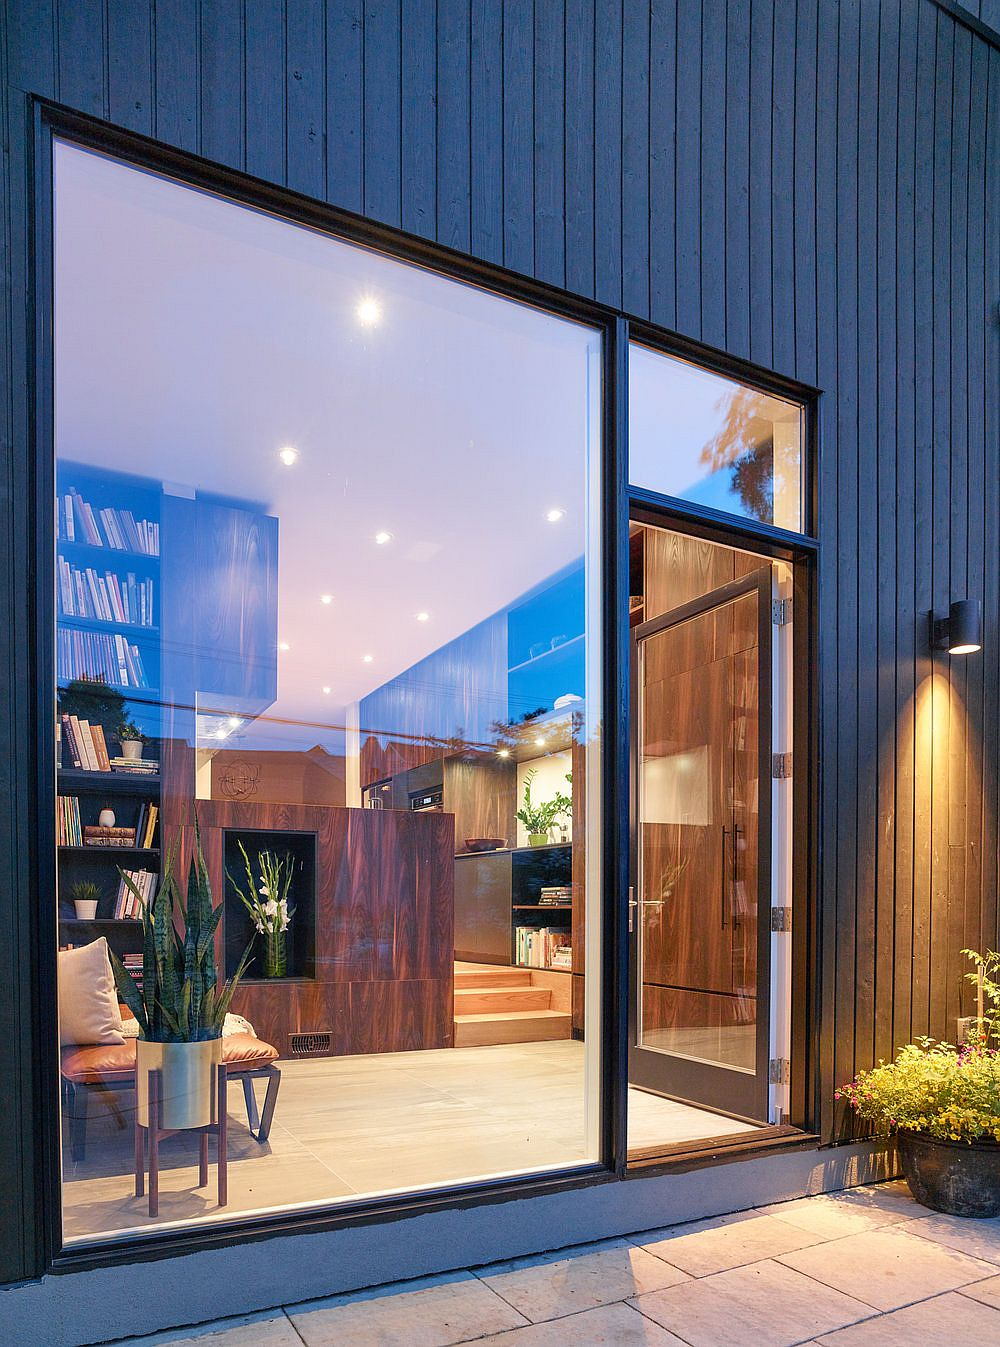 Glass windows and doors connect the interior with the new rear yard